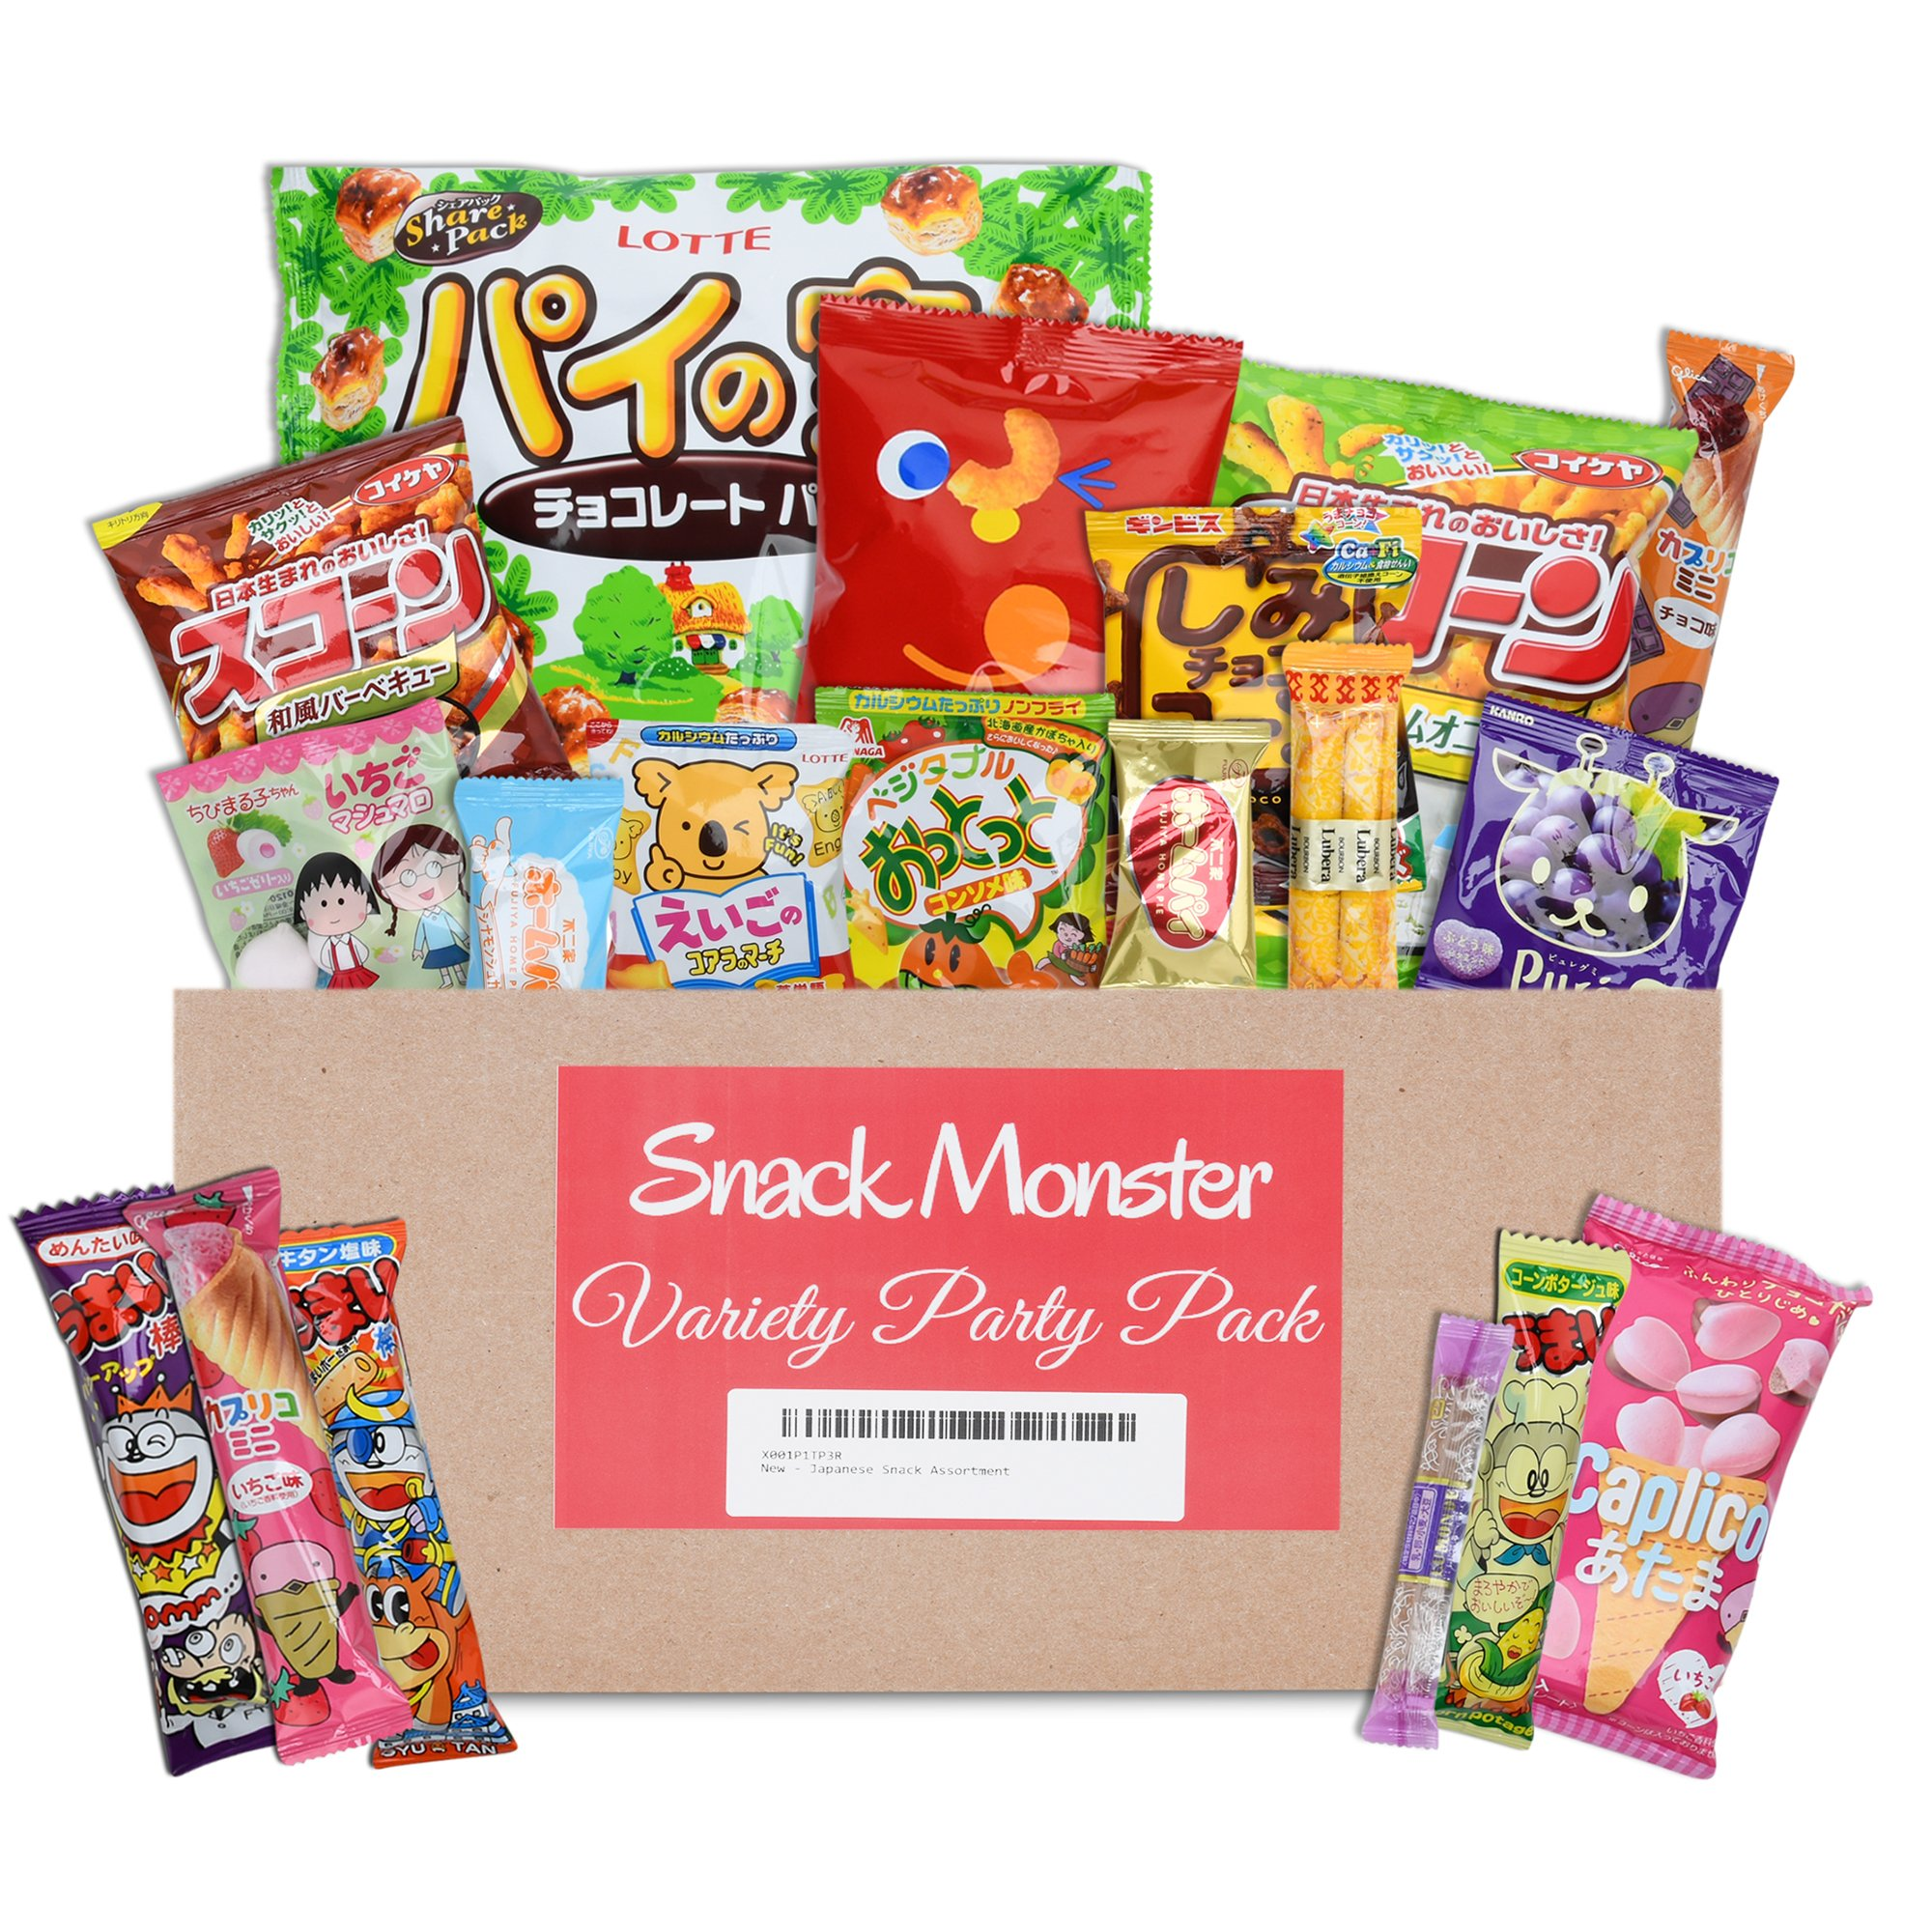 Japanese Candy and Snacks Box by Snack Monster (19 Count) | Classic Package | Snacks, Gummy, Cookies, Chocolate, Crackers, Marshmallow, and More.